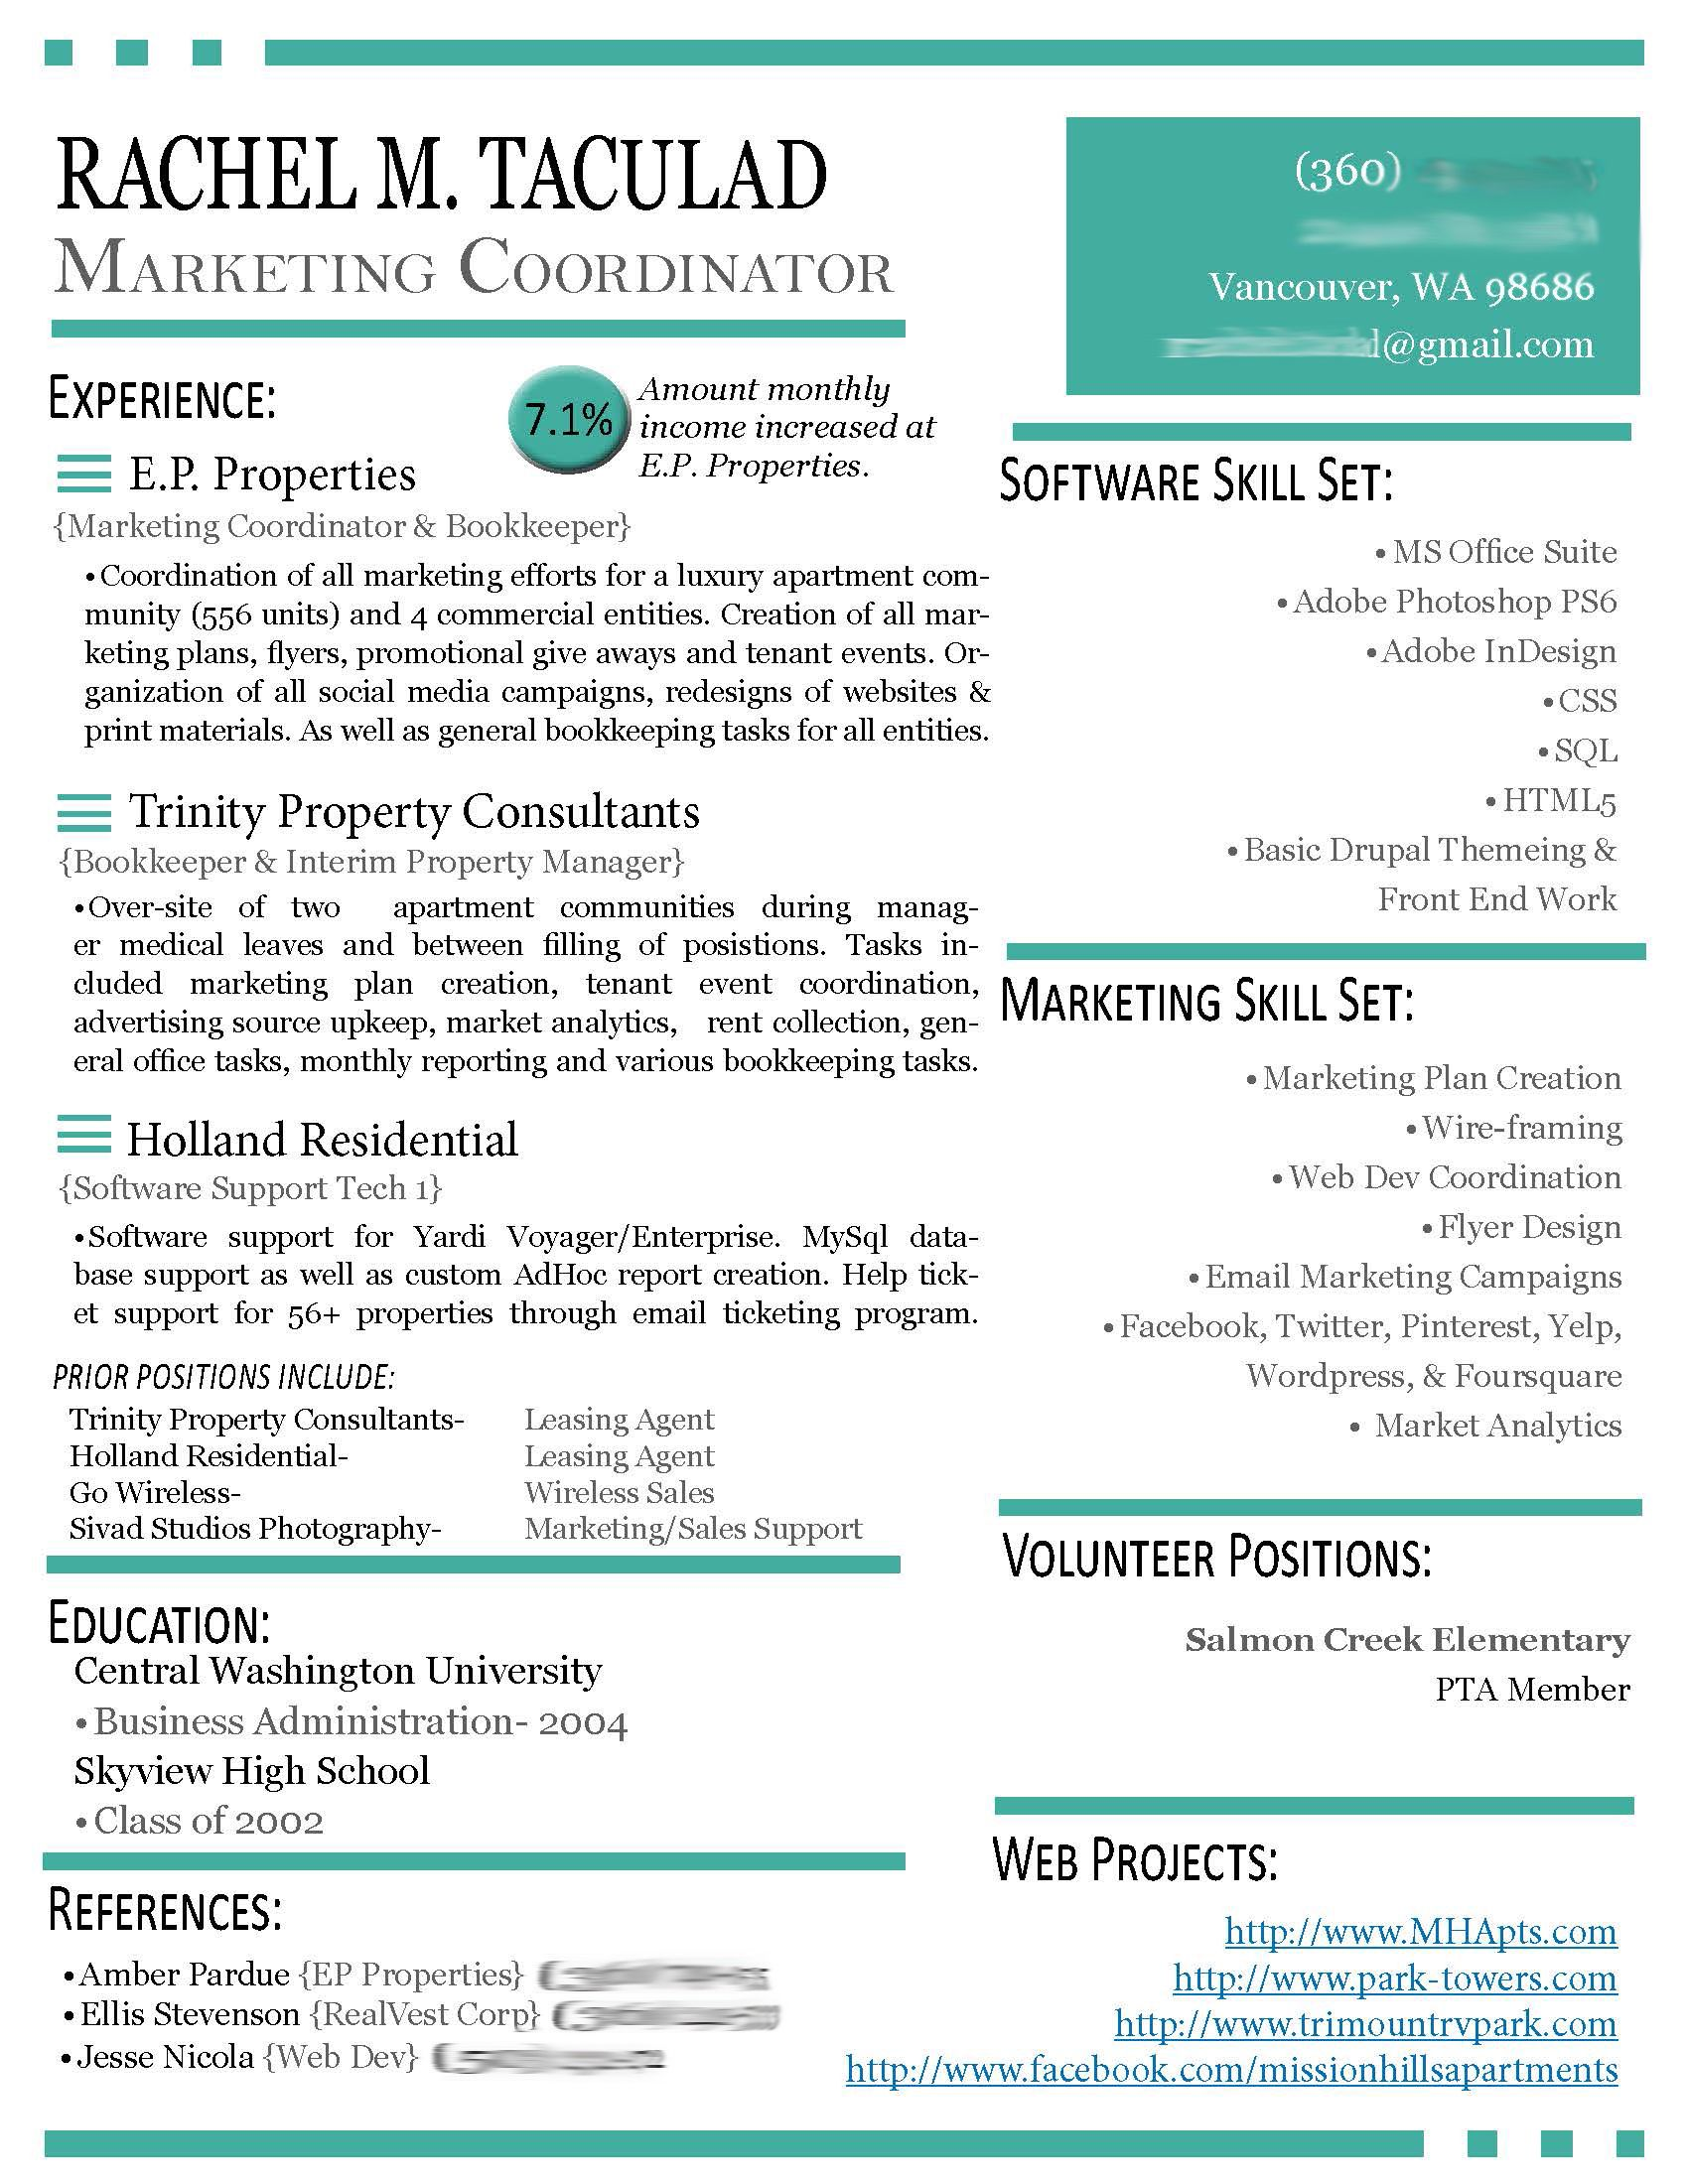 Opposenewapstandardsus  Unusual  Images About Work Stuff On Pinterest  Resume Professional  With Exquisite  Images About Work Stuff On Pinterest  Resume Professional Resume Template And Resume Templates With Lovely Federal Resume Guidebook Also Dog Walker Resume In Addition Best Resume Example And What To Say On A Resume As Well As Babysitting On Resume Additionally Resume Templates Word Download From Pinterestcom With Opposenewapstandardsus  Exquisite  Images About Work Stuff On Pinterest  Resume Professional  With Lovely  Images About Work Stuff On Pinterest  Resume Professional Resume Template And Resume Templates And Unusual Federal Resume Guidebook Also Dog Walker Resume In Addition Best Resume Example From Pinterestcom